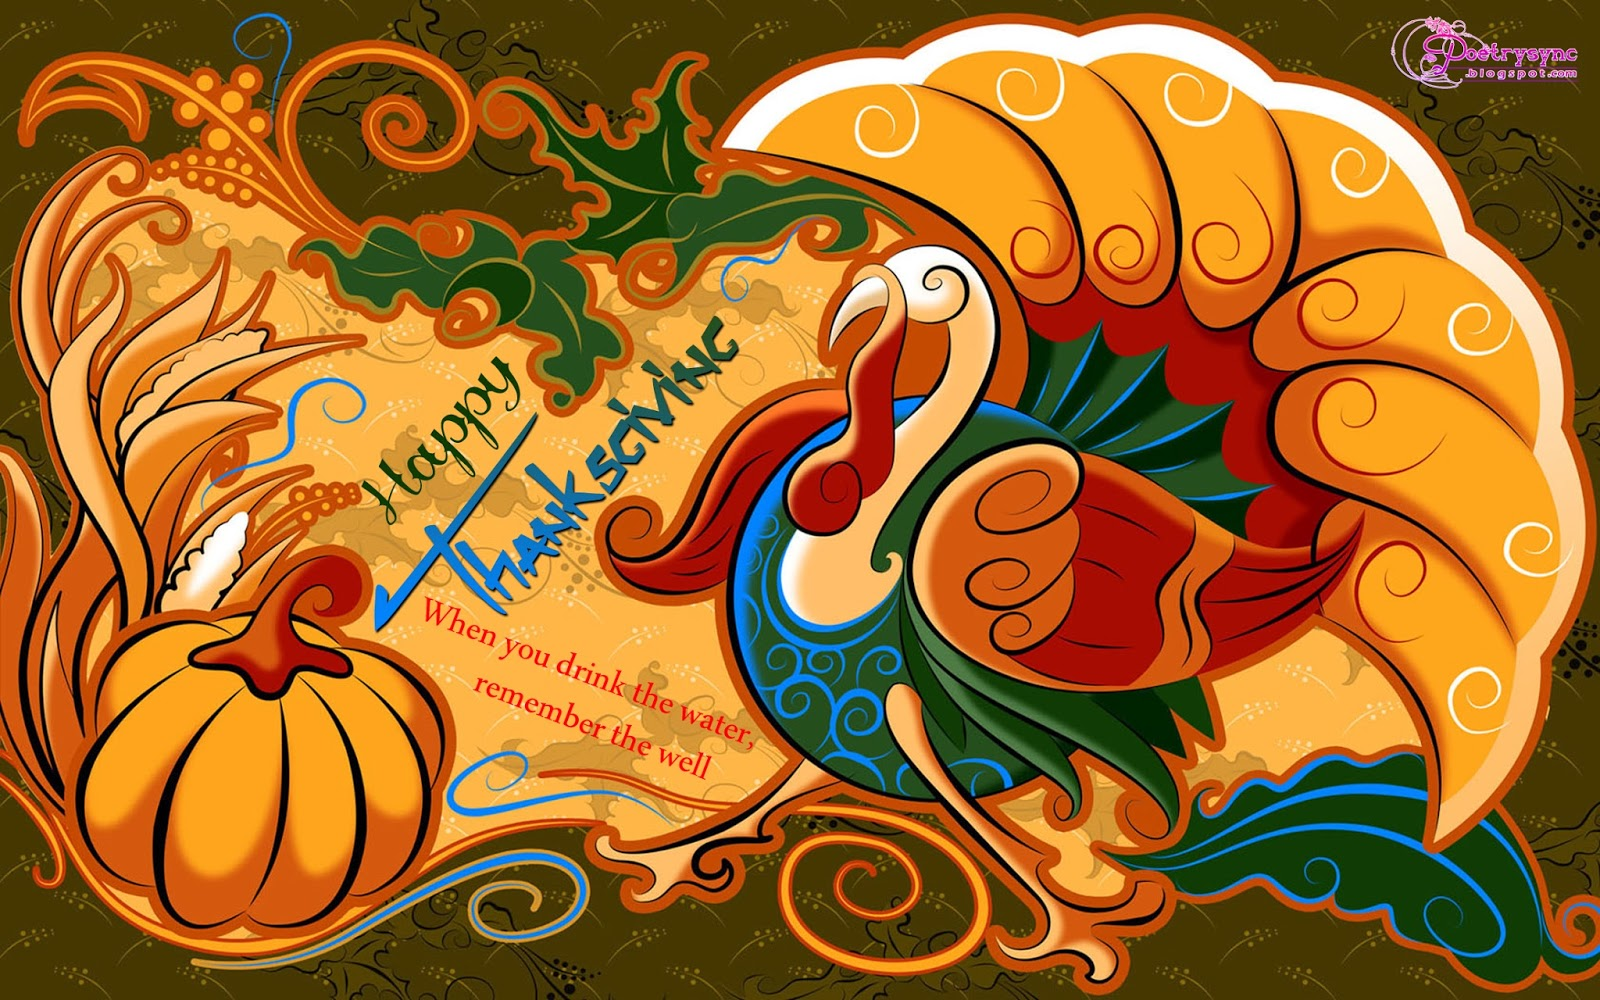 Thanksgiving greetings cards images greeting card examples 25 happy thanksgiving greetings messages get together invitation thanksgiving day wishes quotes sayings messages sms greetings kristyandbryce Gallery